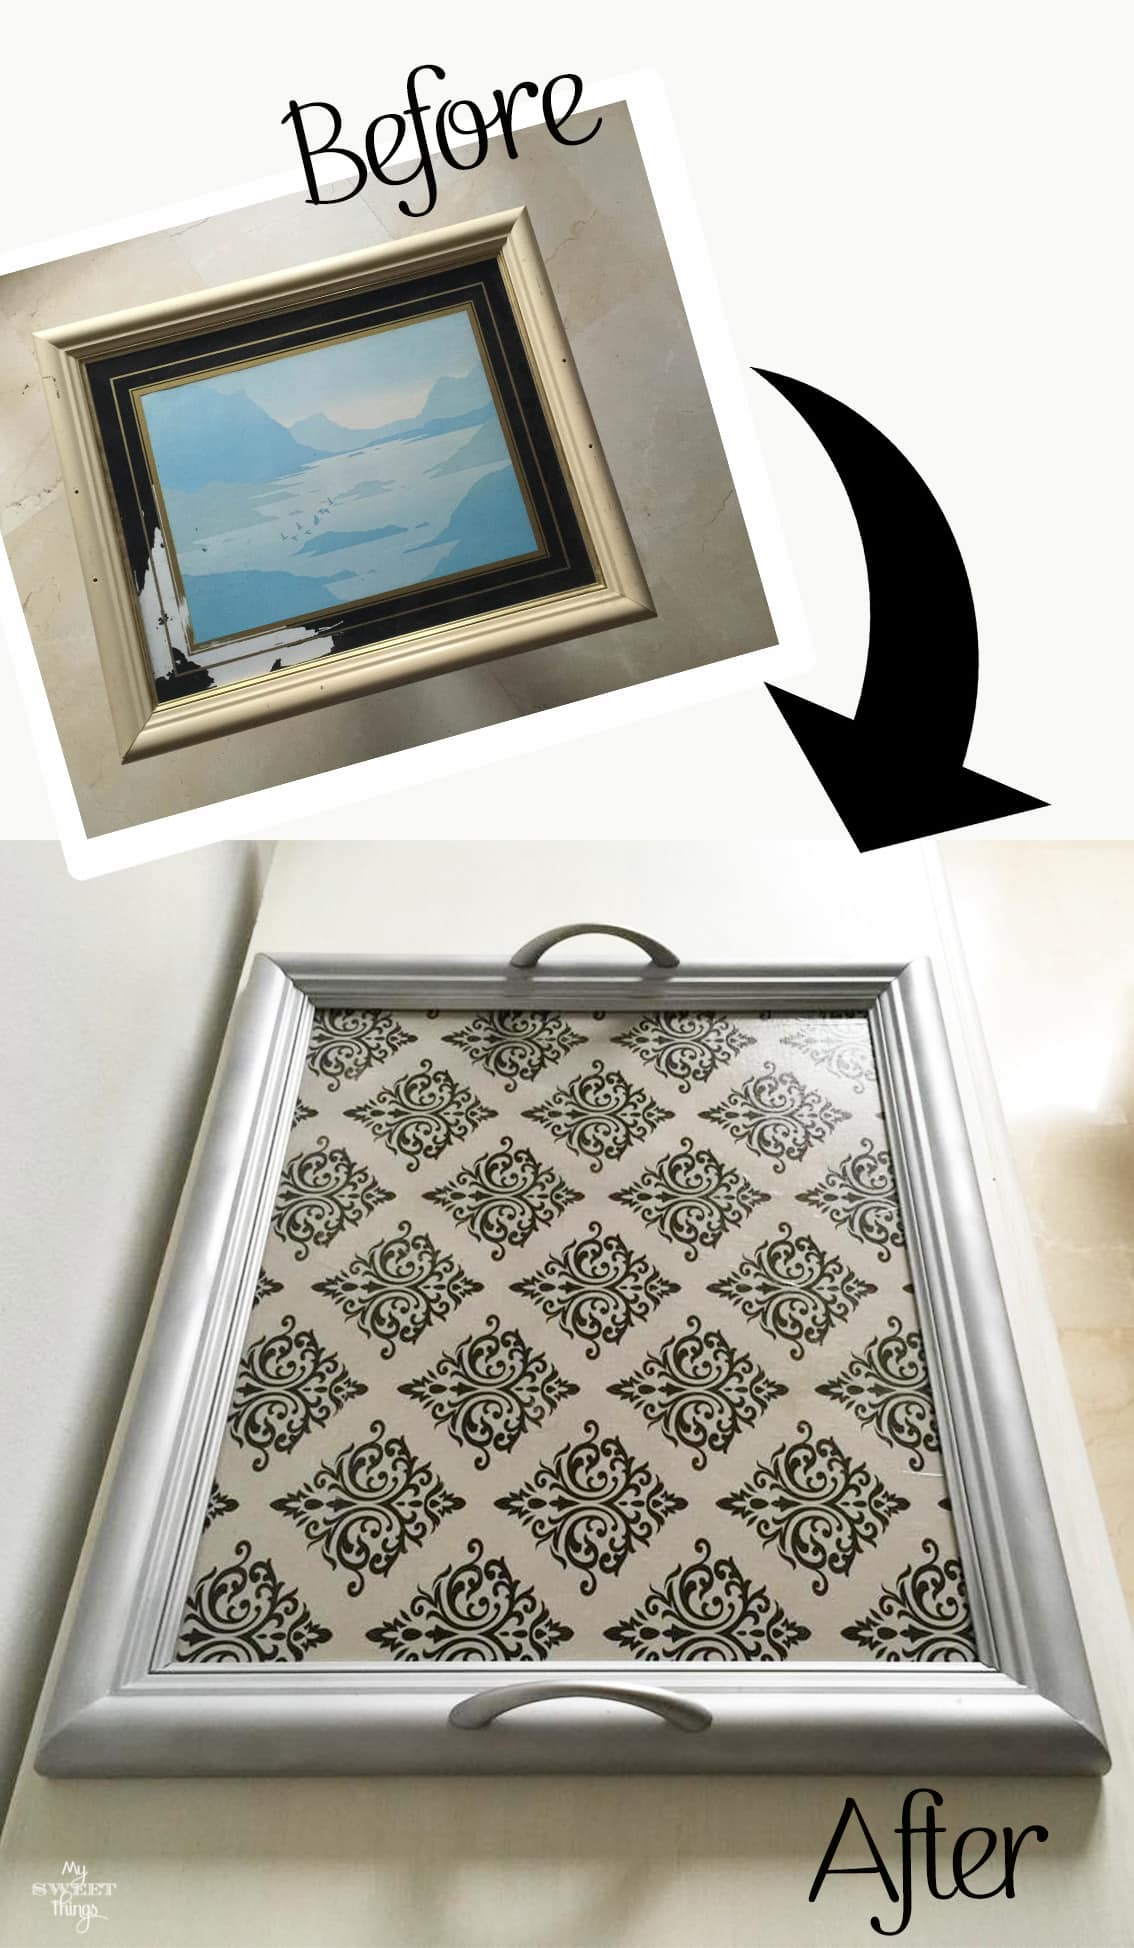 How to transform a picture frame into a tray | #Repurpose an old picture | Via www.sweethings.net #upcycling #makeover #tray #damask